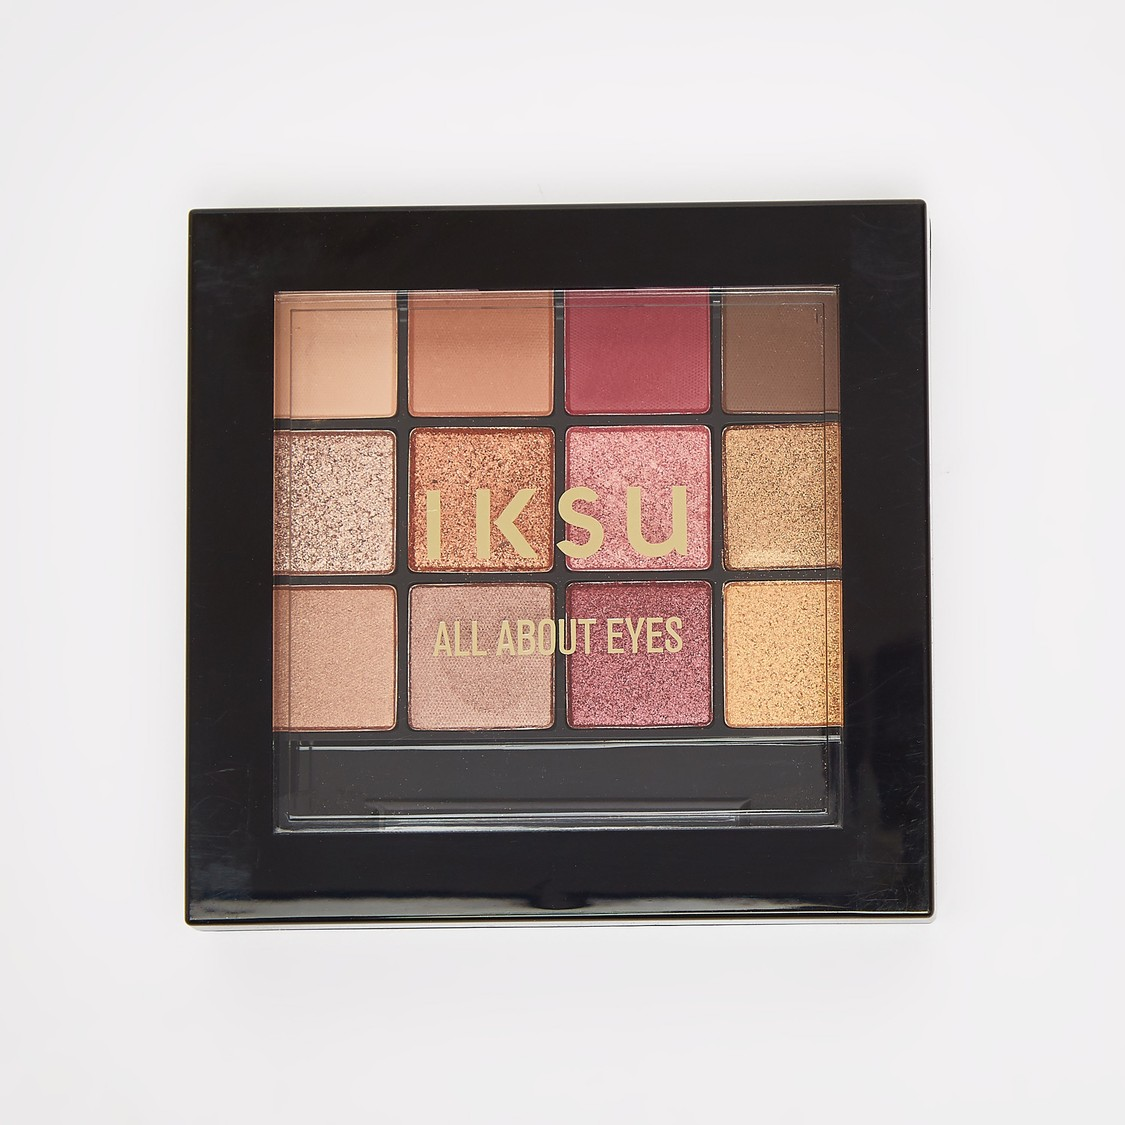 IKSU All About Eyes Make-Up